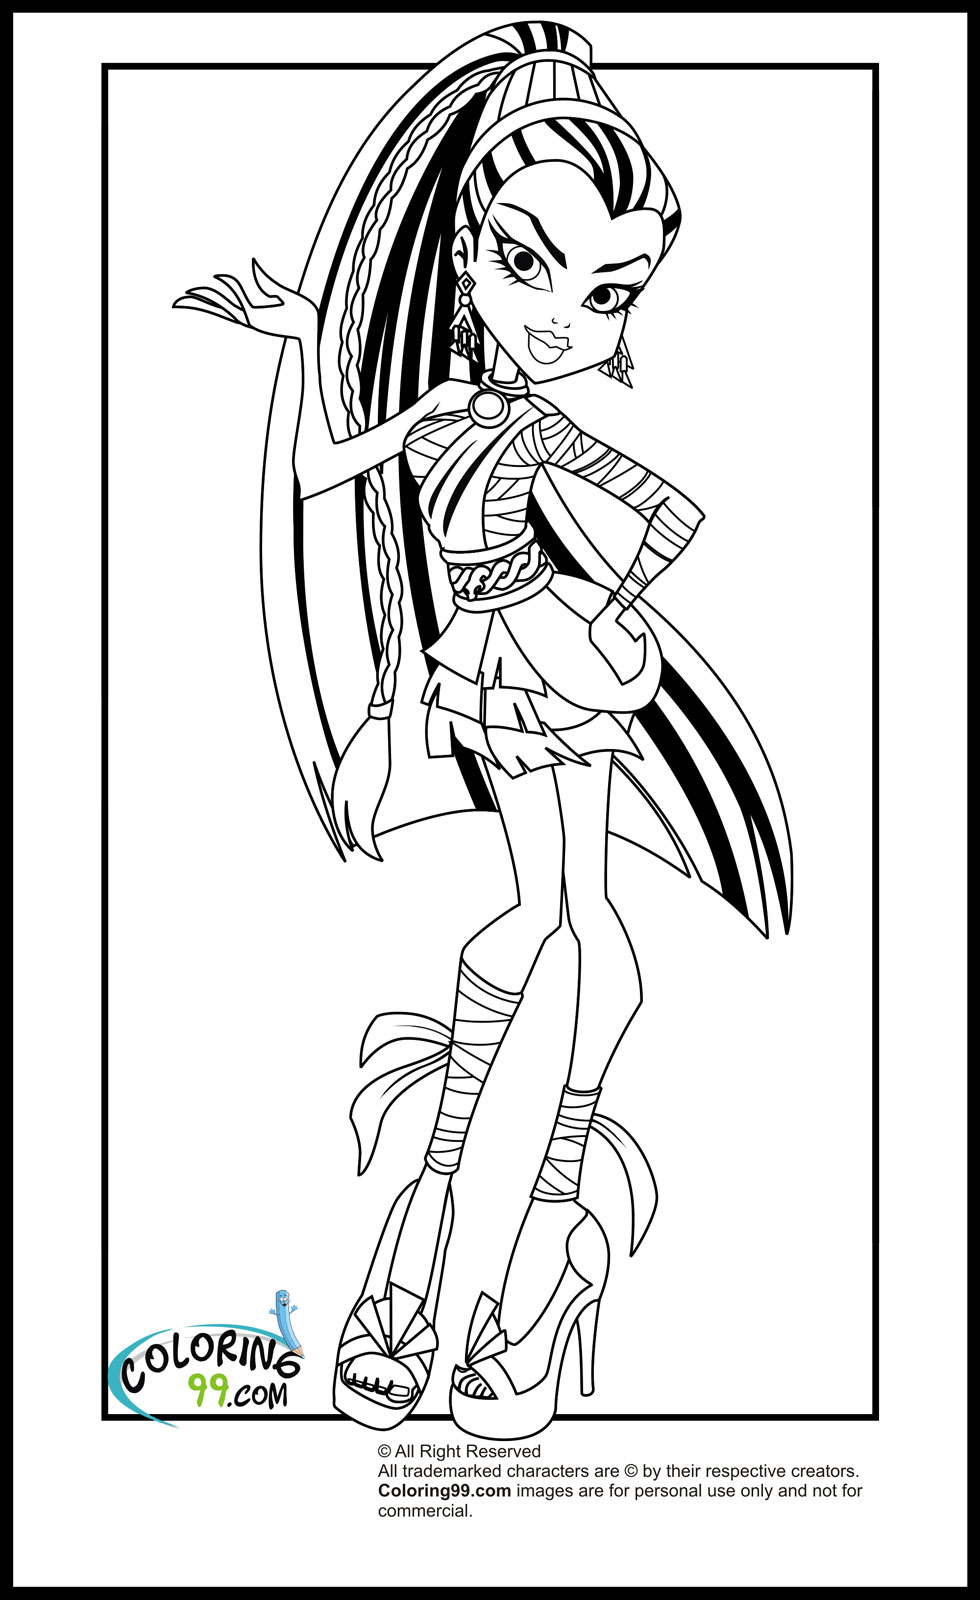 monster high color pages free coloring pages monster high coloring pages free and printable pages color high monster free